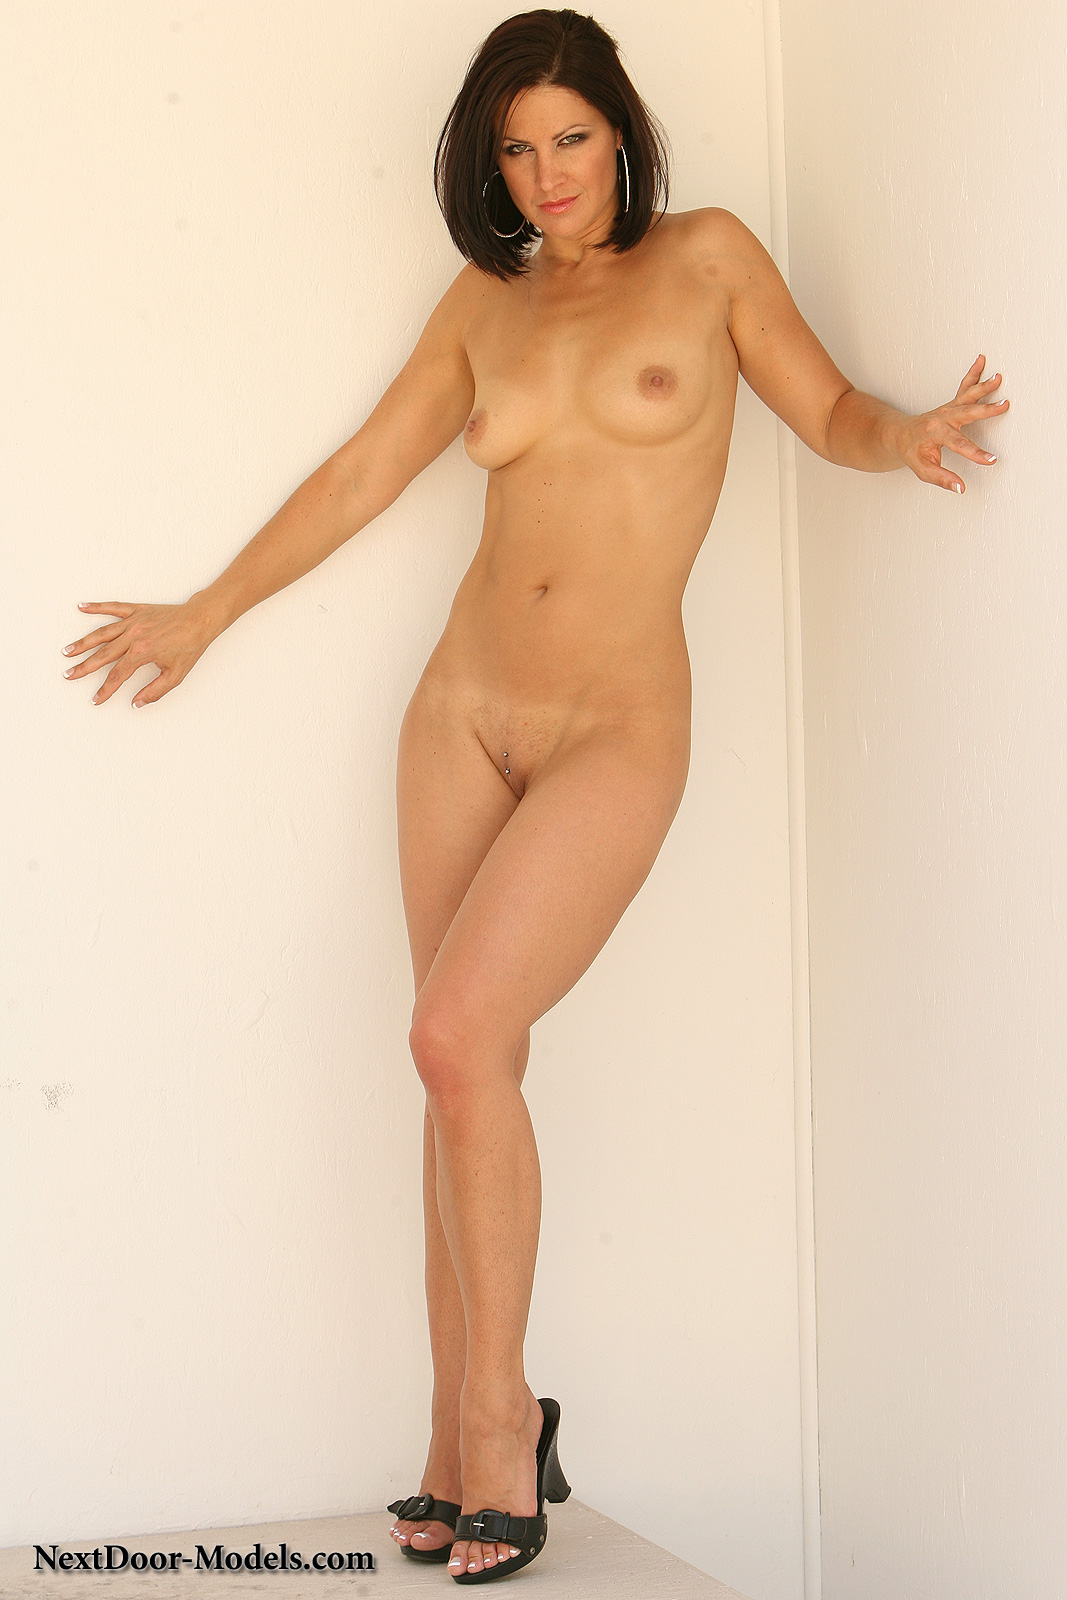 galleries nextdoor models content 214 img 13